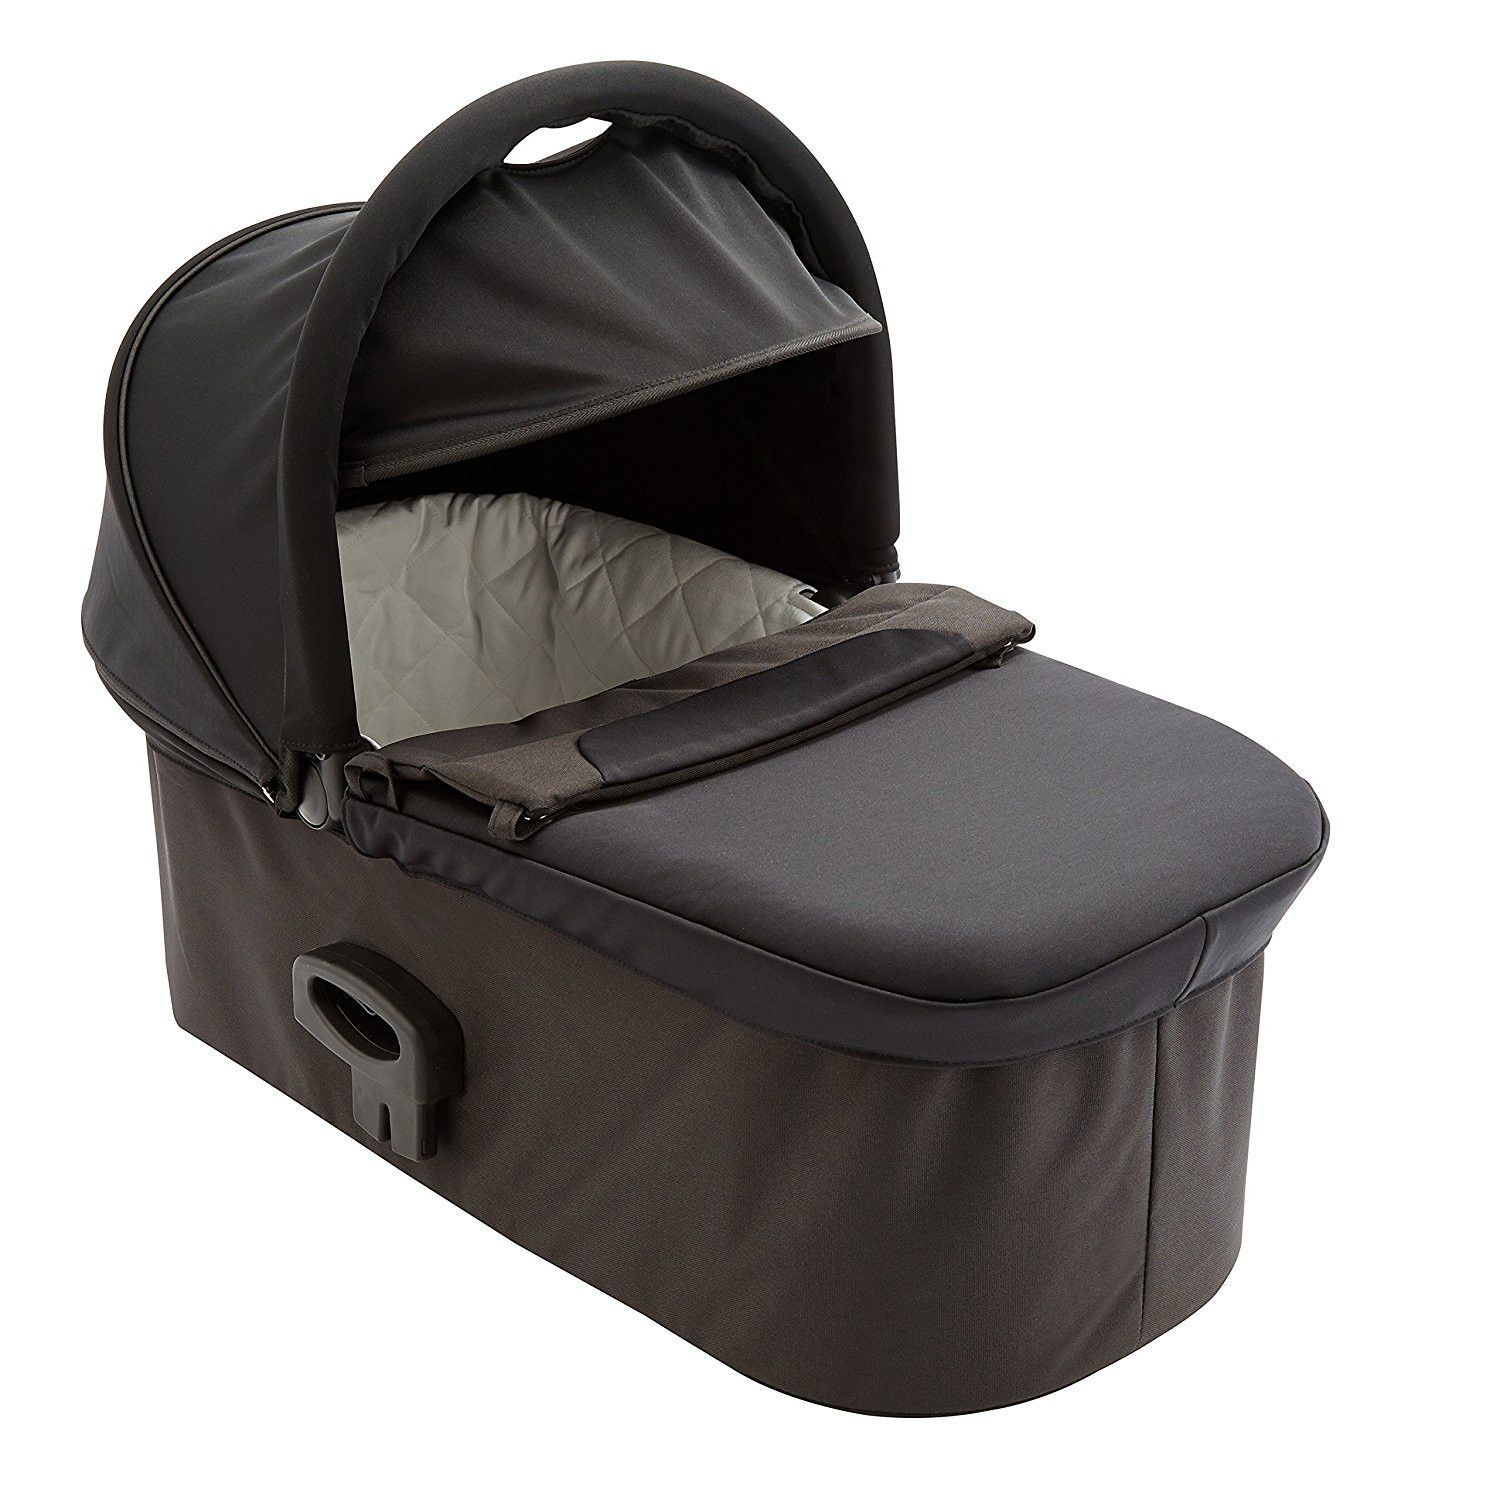 Baby Jogger Deluxe Pram (With images) Baby